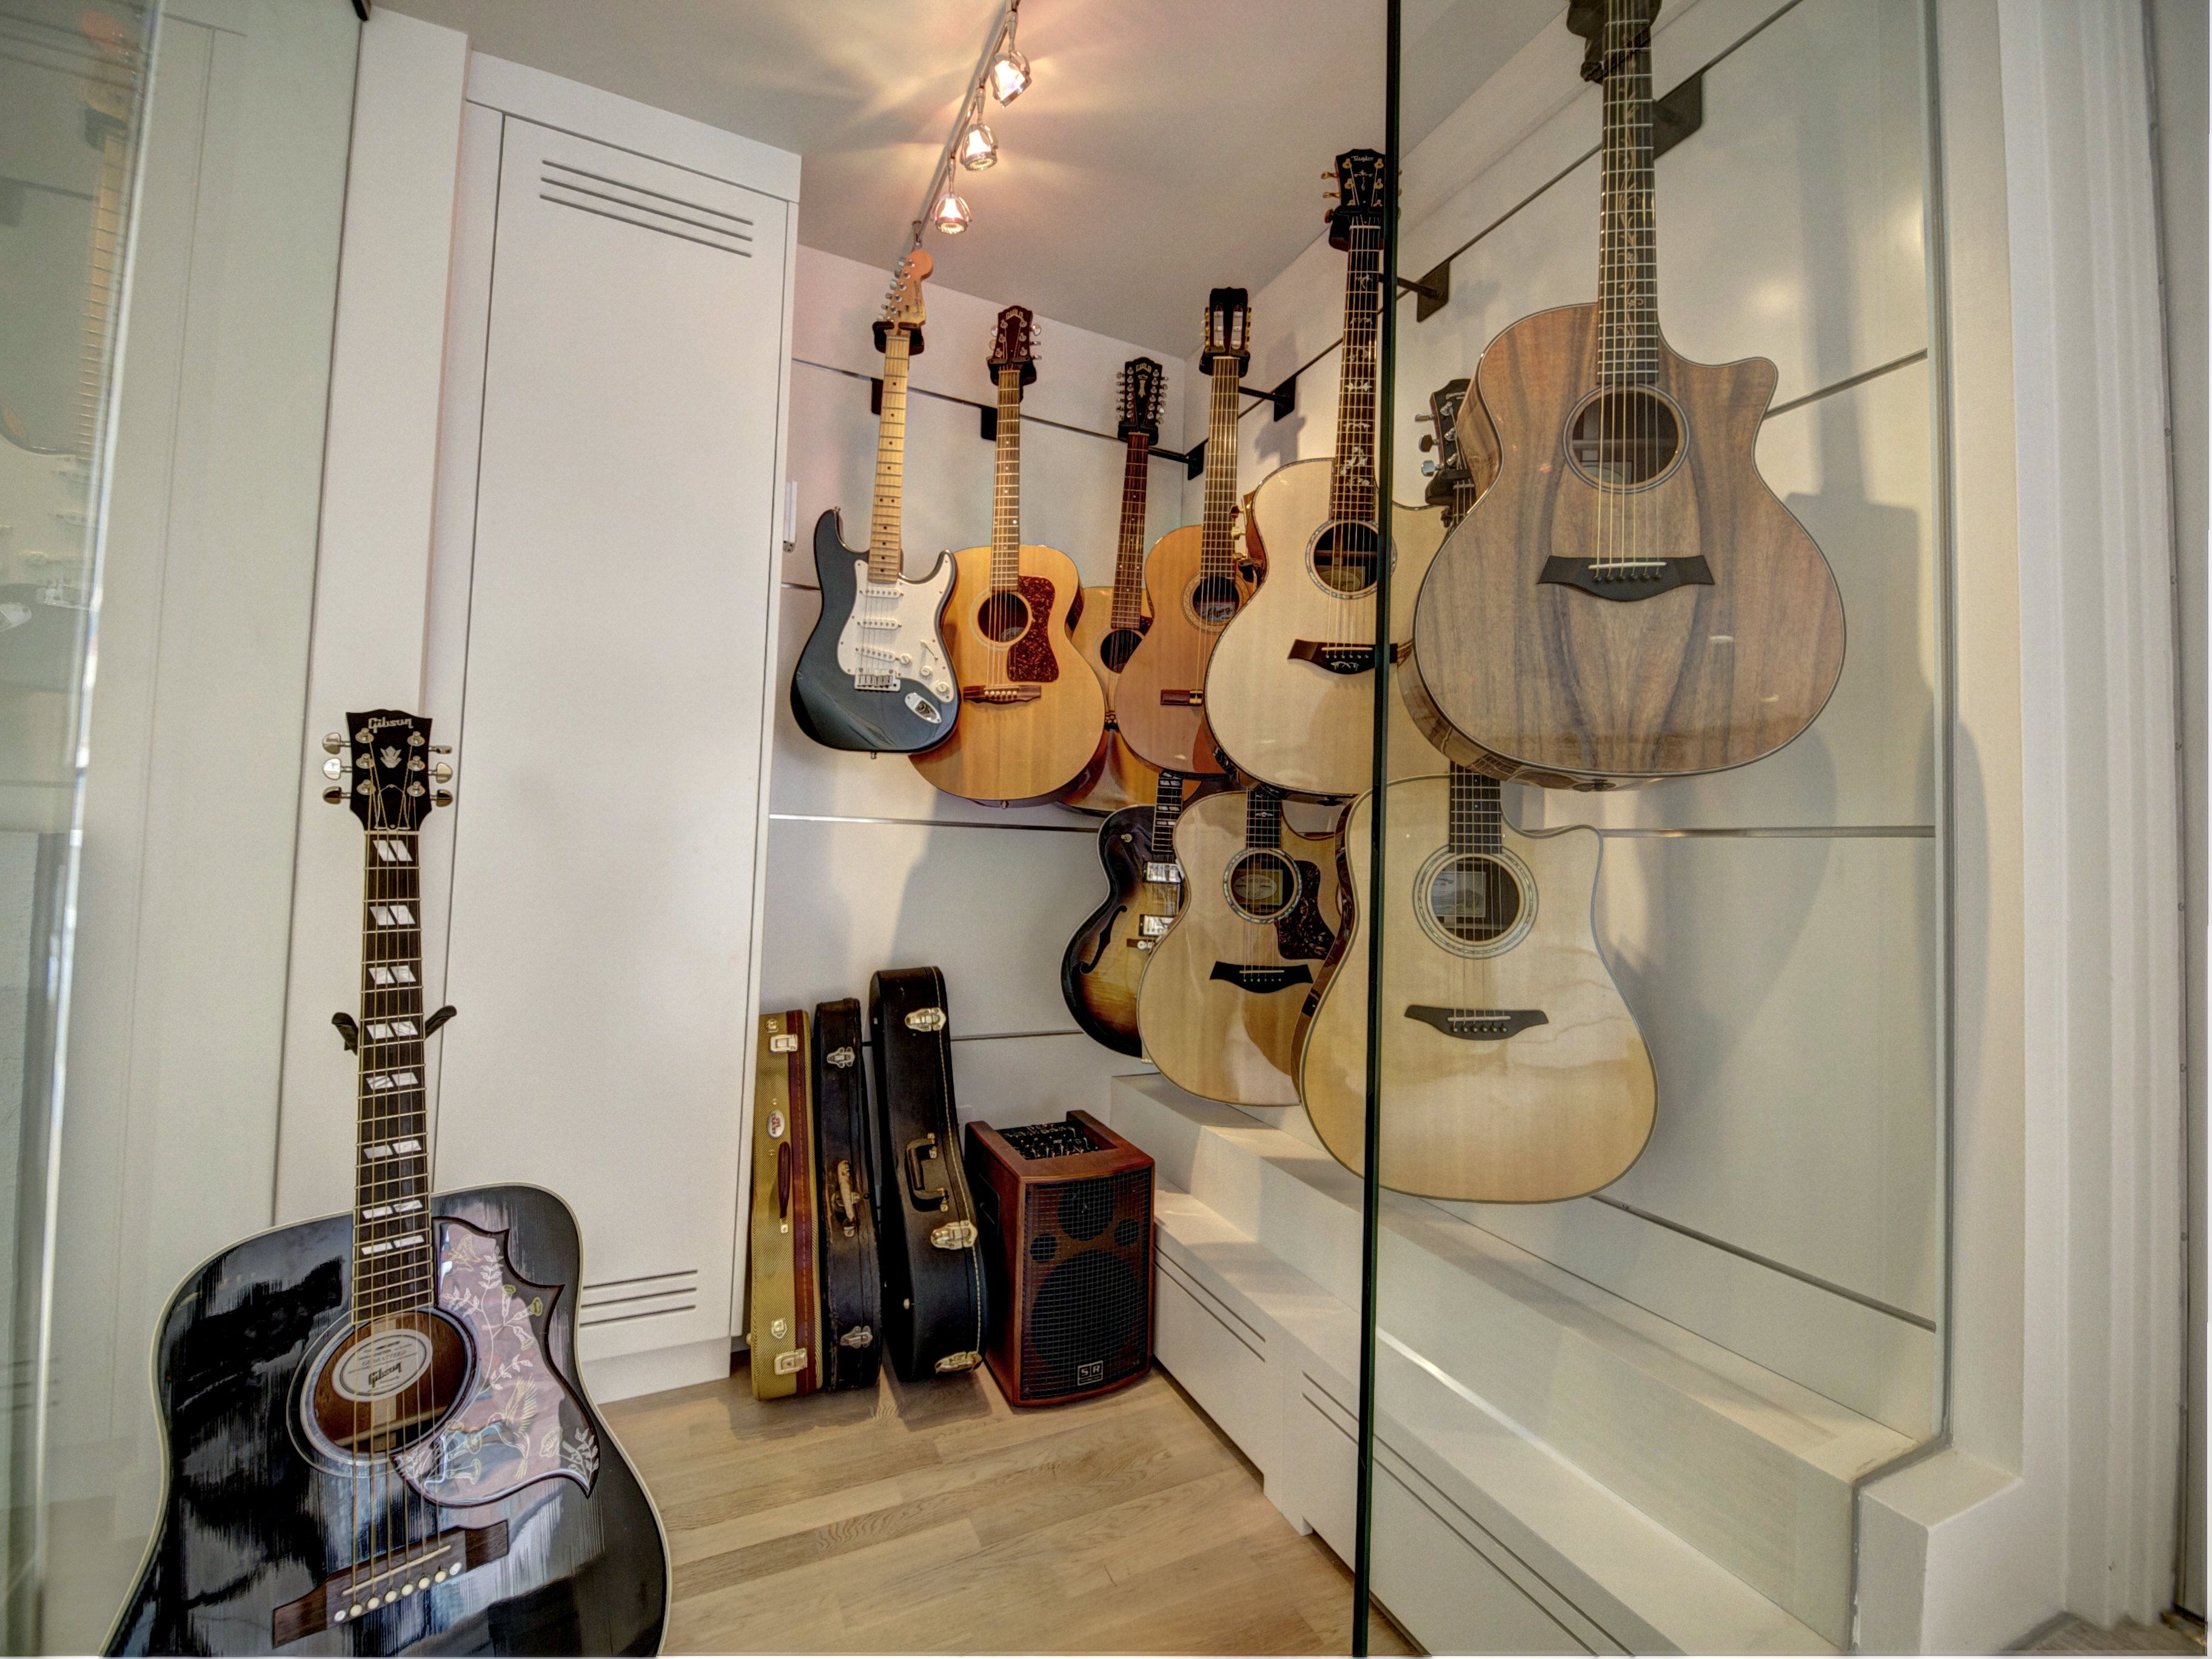 Stairs With Guitar Room In Background, 12mm Glass Panelling   Home Design    Pinterest   Guitar Room, Room And Guitar Wall